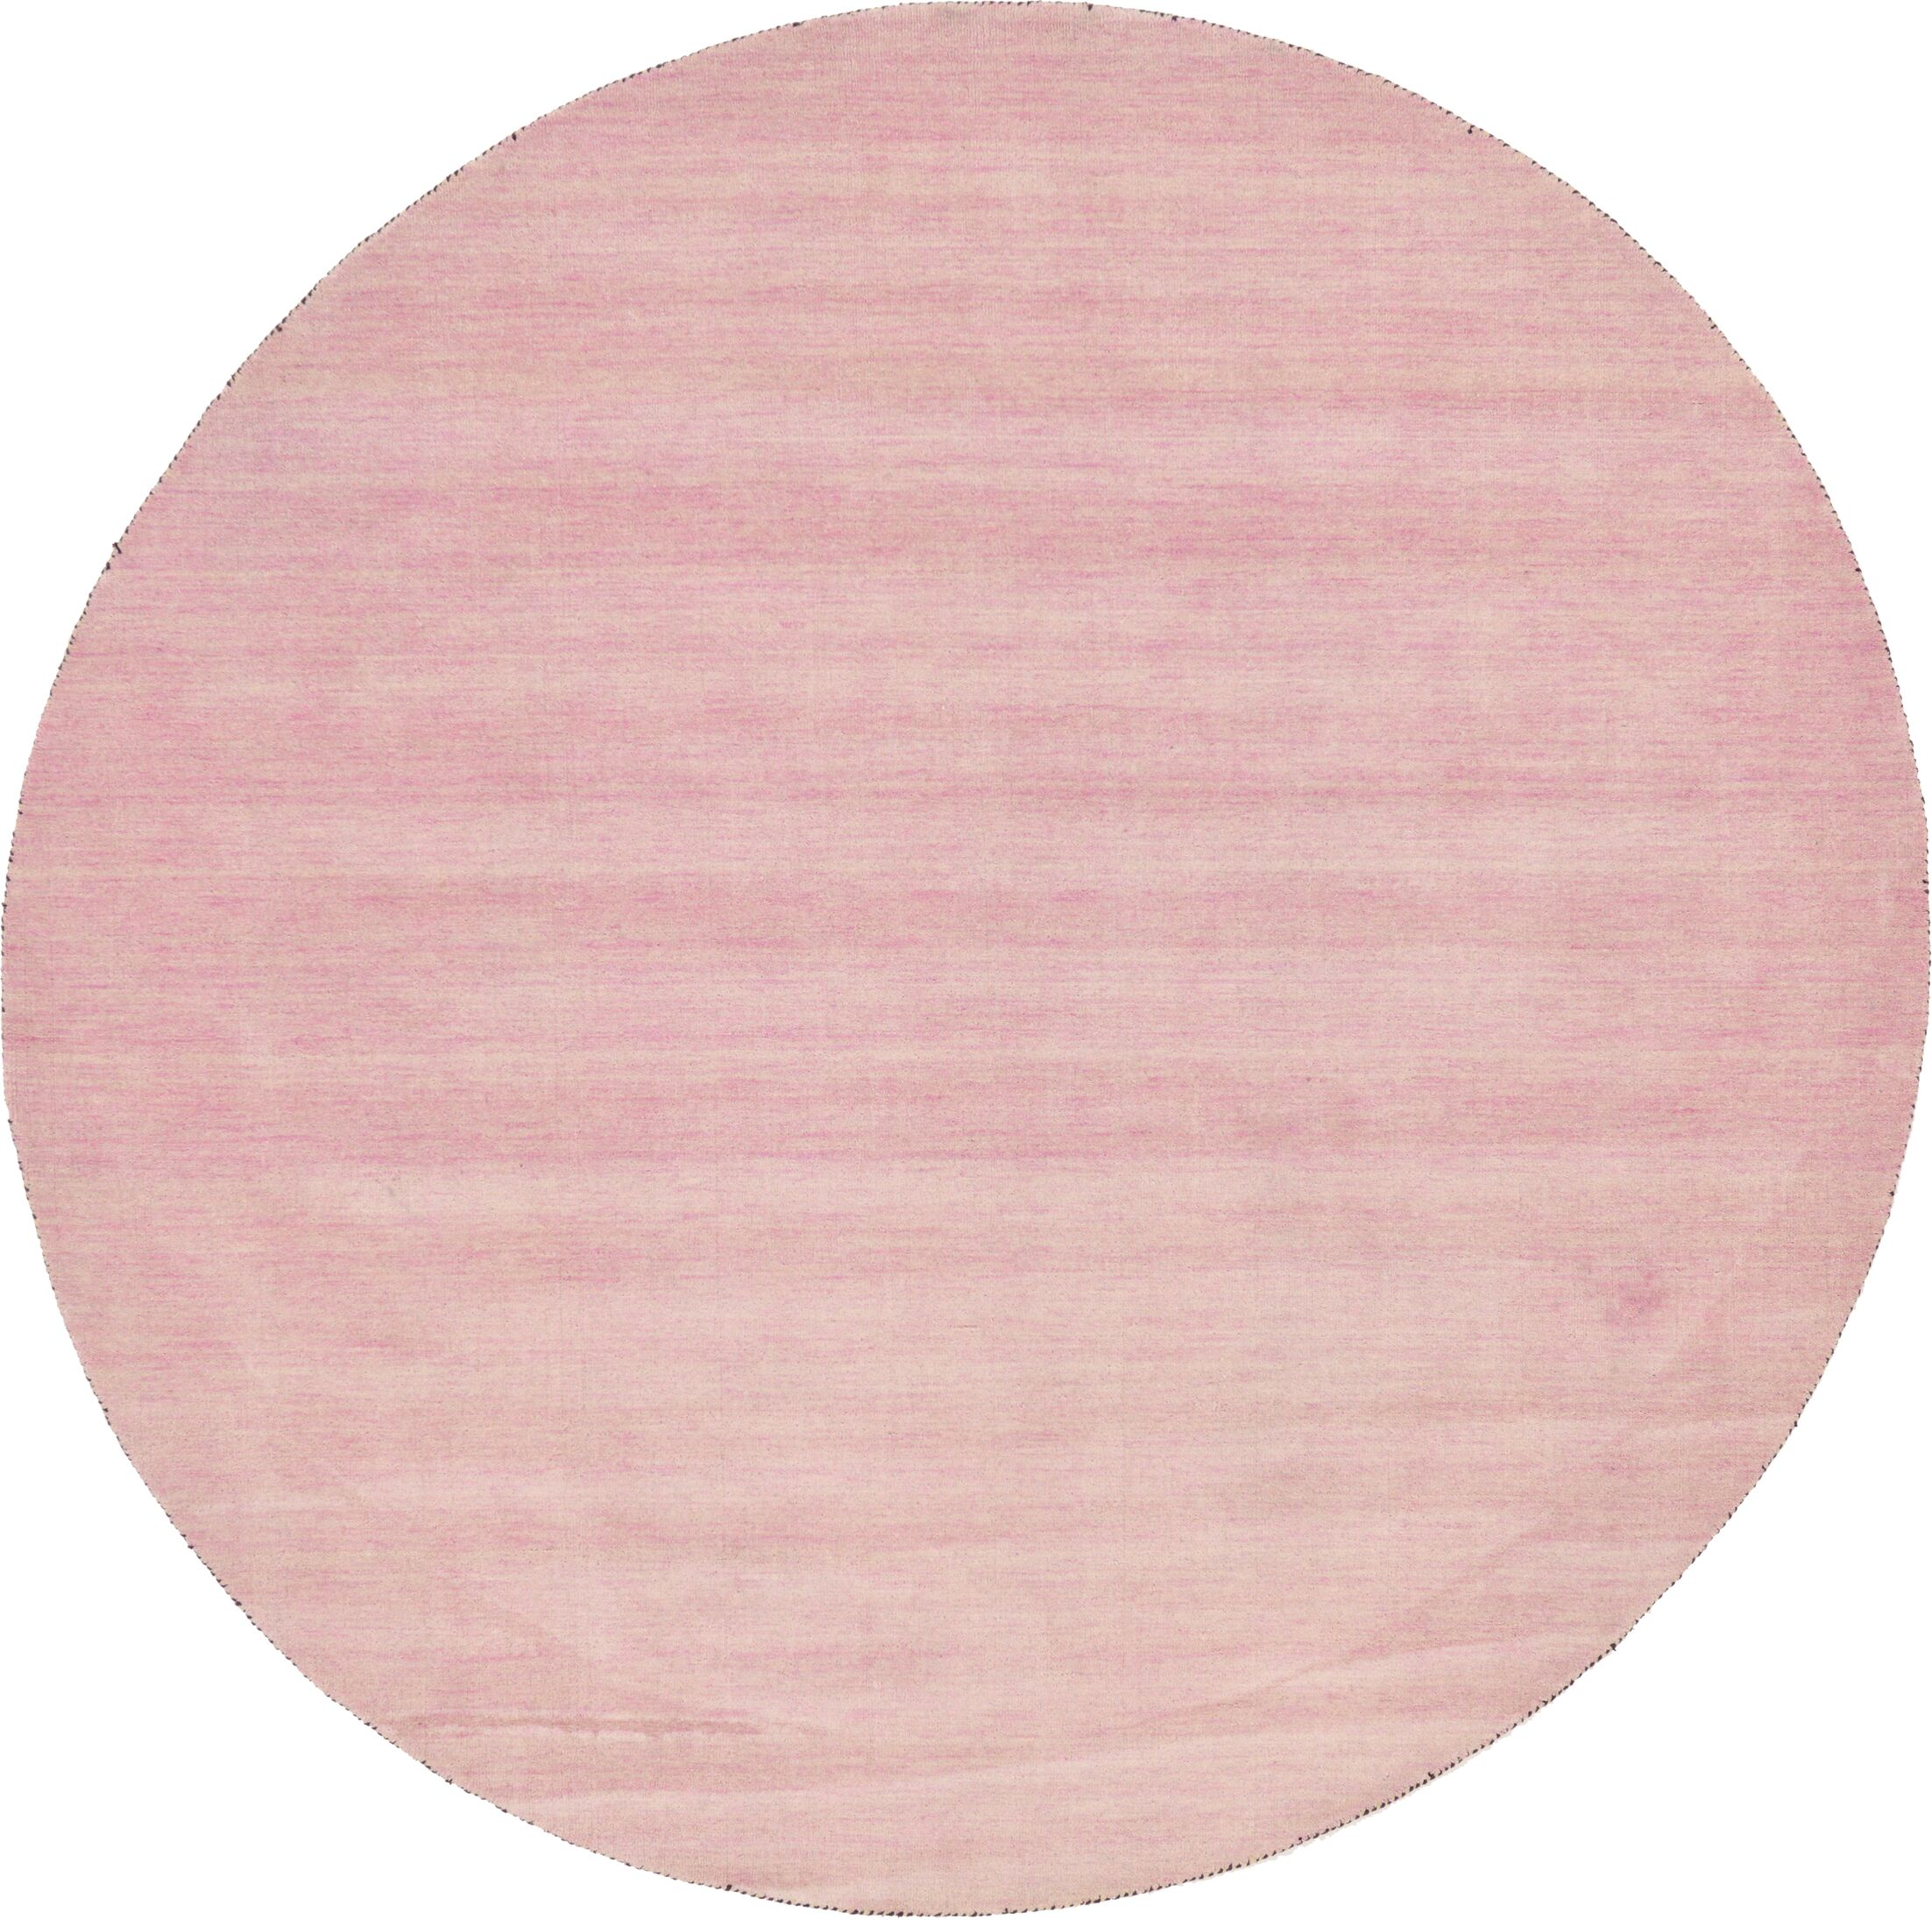 Taul Hand-Knotted Wool Pink Area Rug Rug Size: Round 9' 10